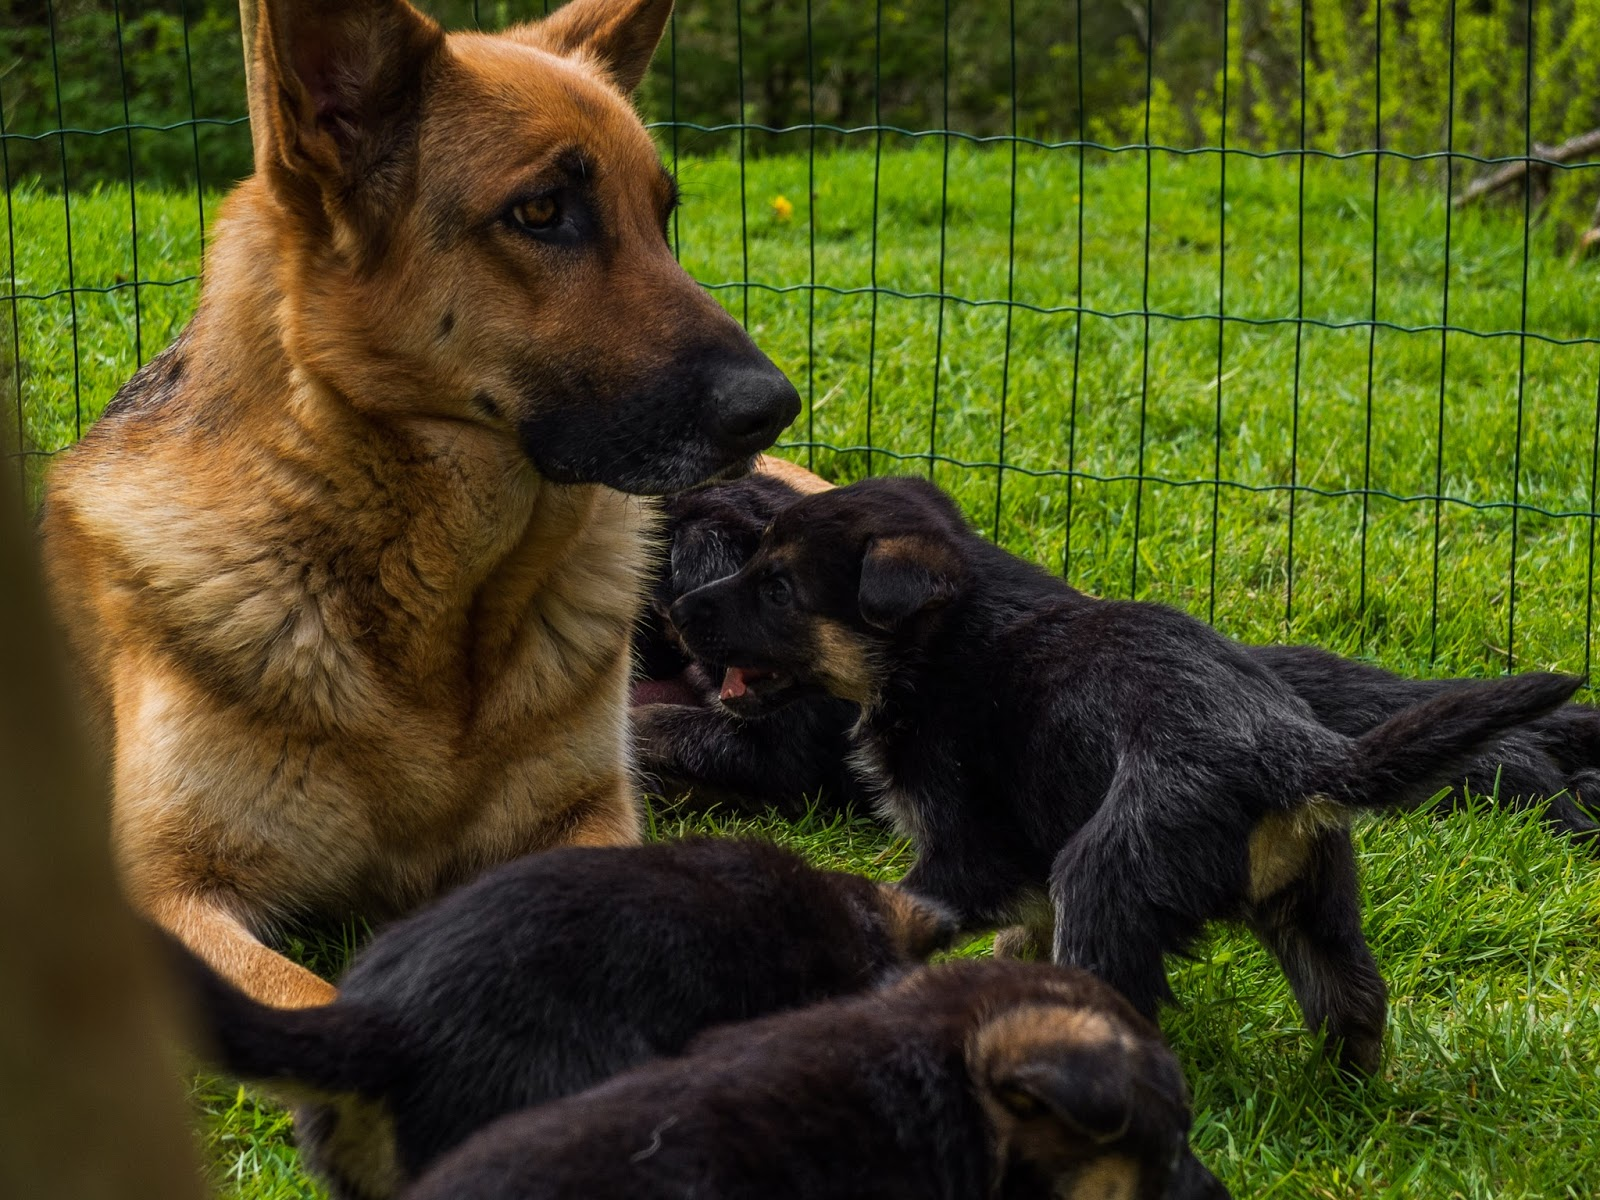 Month old German Shepherd puppy about to bite mom.